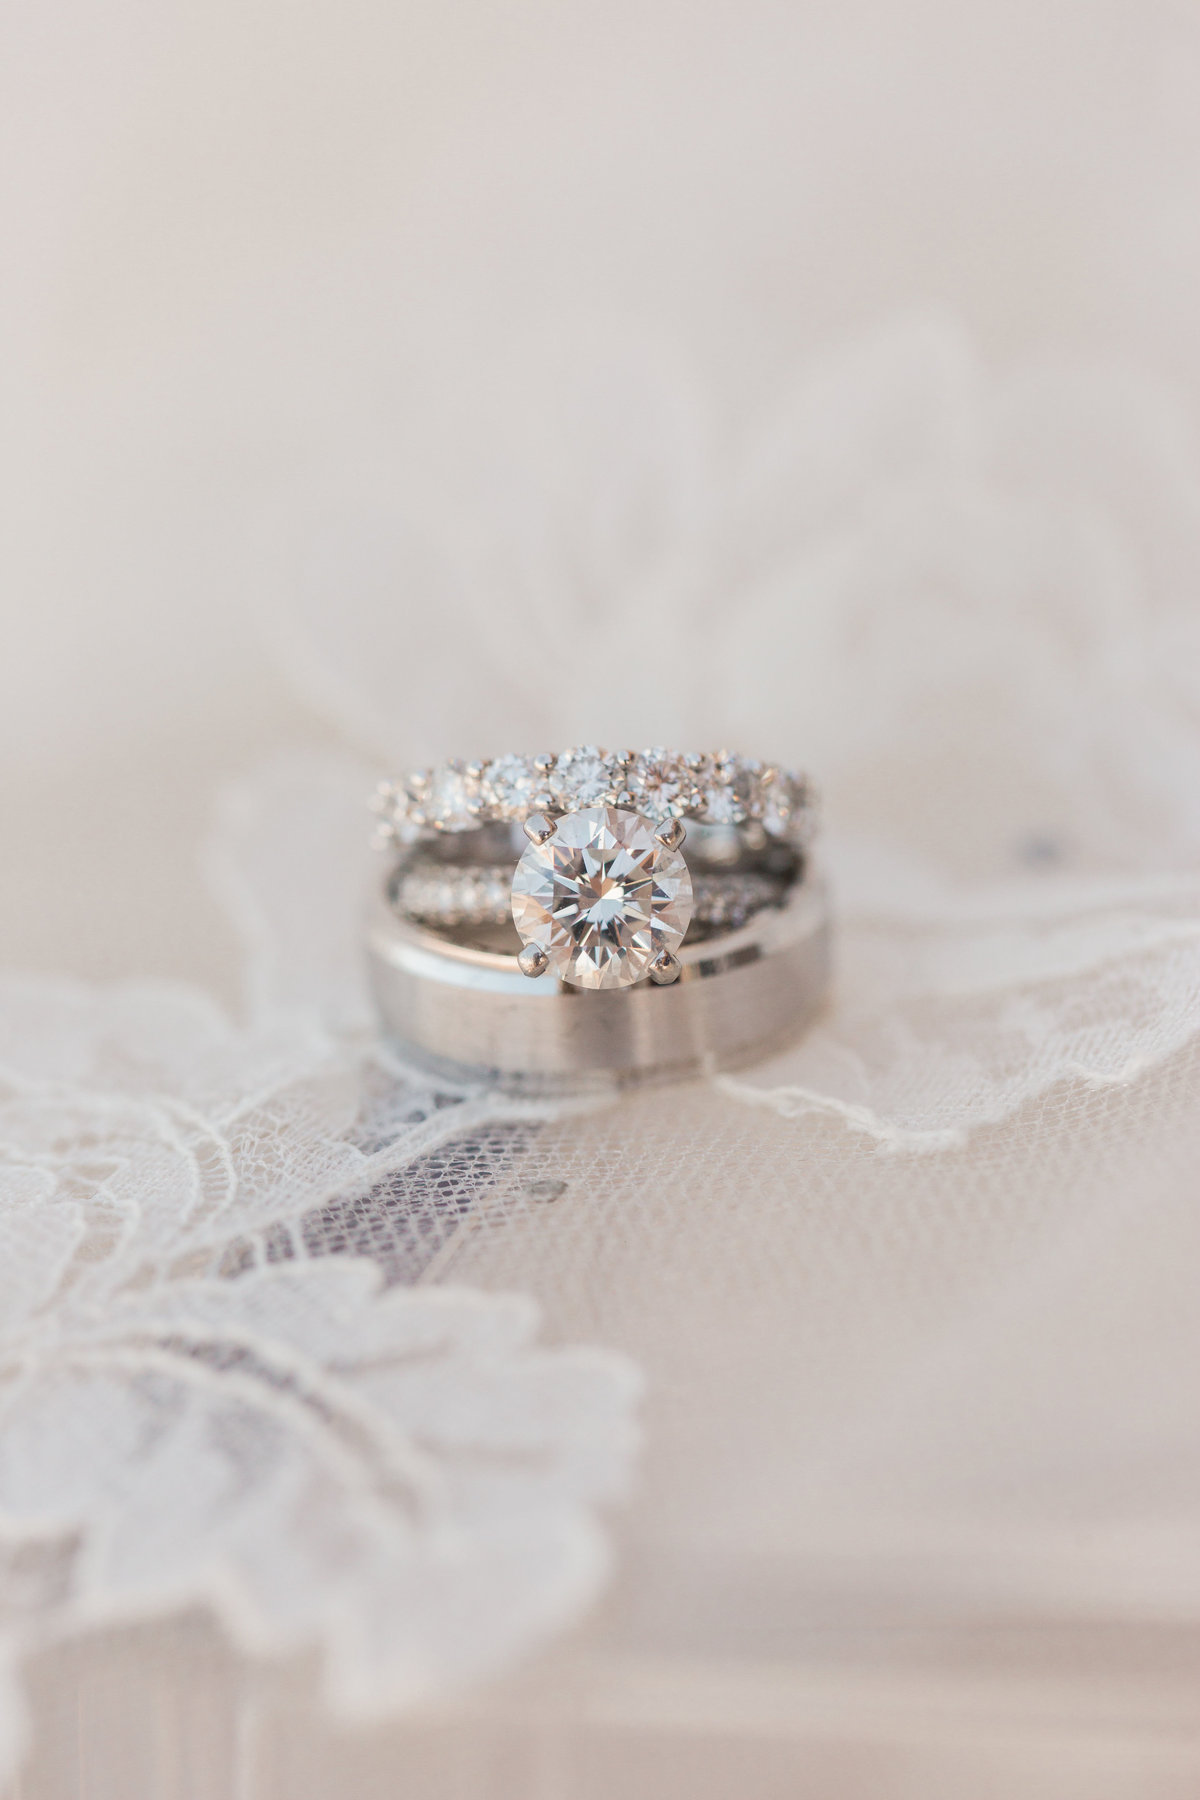 Malibu_Rocky_Oaks_Wedding_Inbal_Dror_Valorie_Darling_Photography - 14 of 160